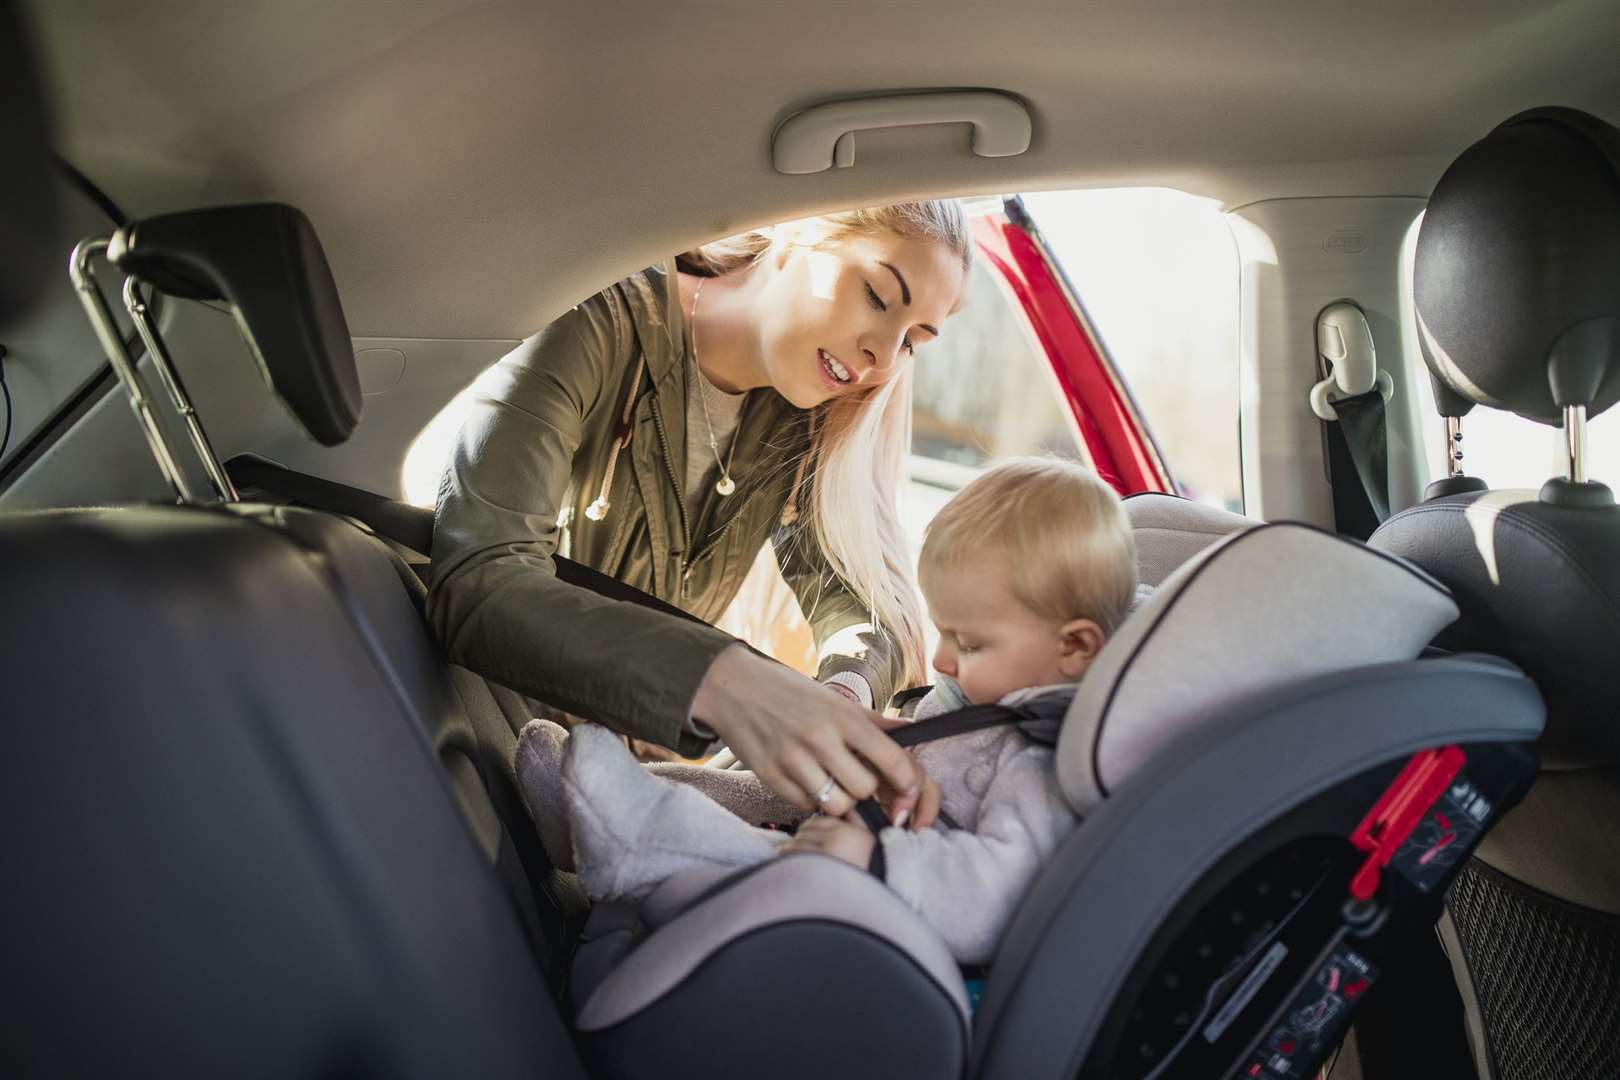 Find out how to fit your child's car seat correctly on Tuesday, February 2